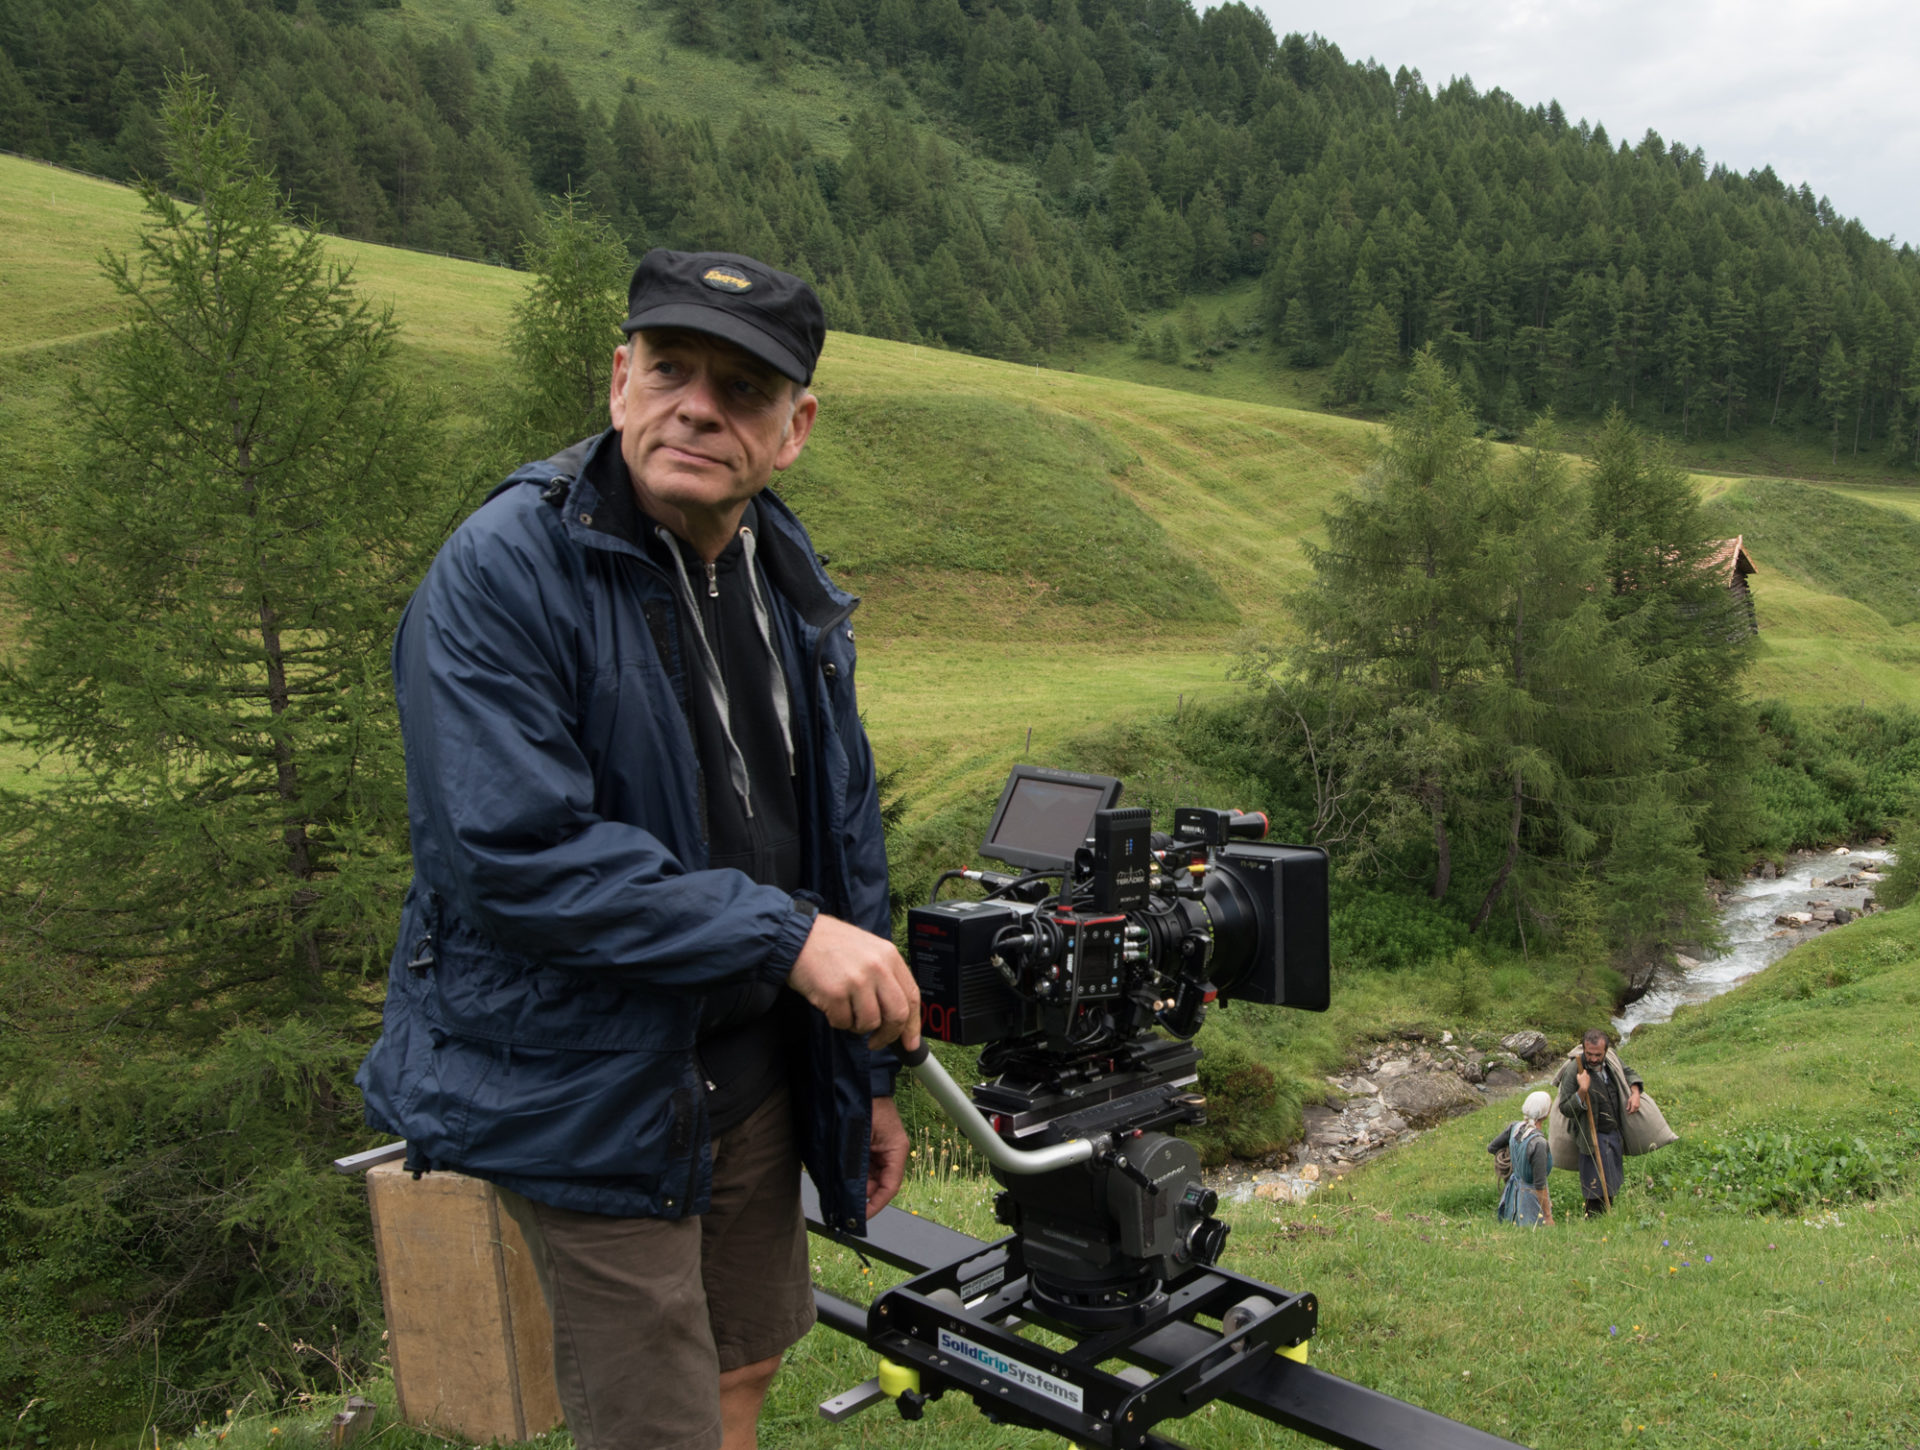 Director of Photography Joerg Widmer on the set of <em>A Hidden Life</em>. Photo by Reiner Bajo